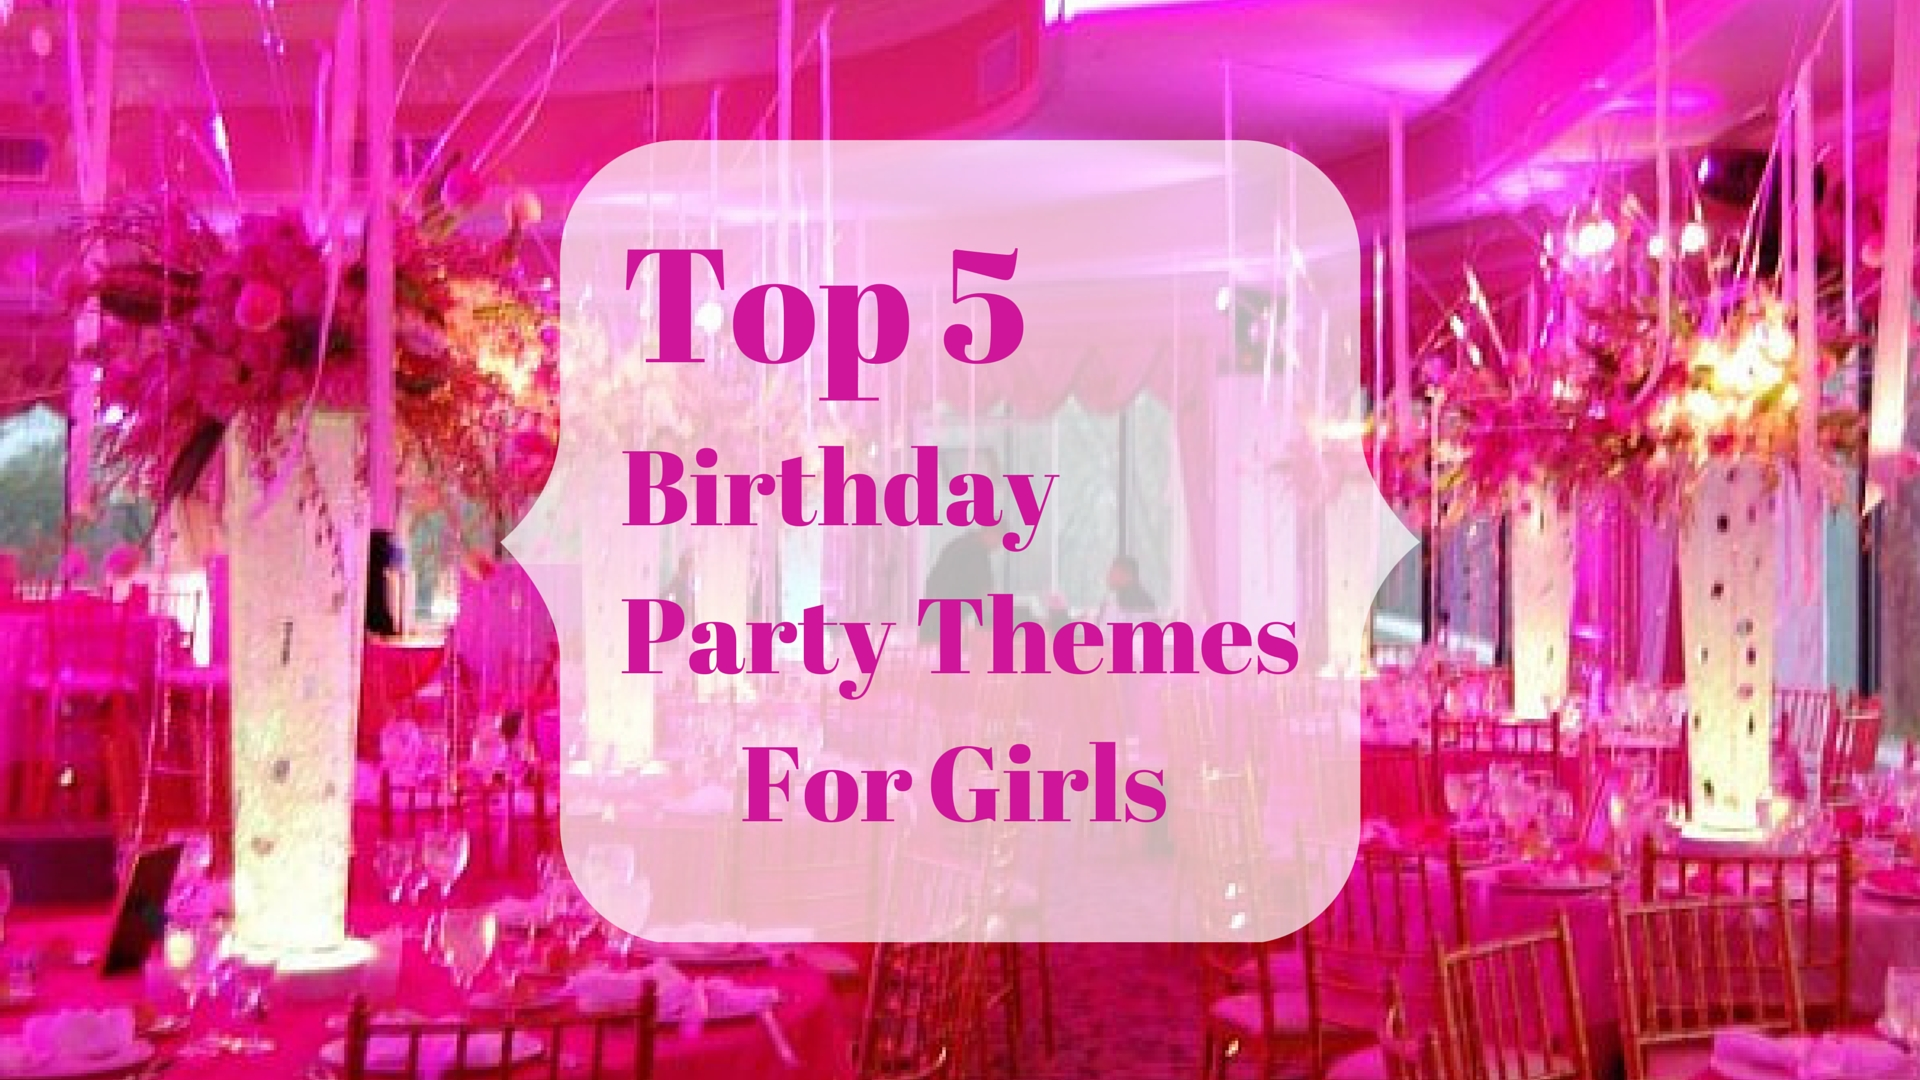 10 Unique Birthday Party Ideas For 10 Year Girl top 5 birthday party themes for girls 10 2020